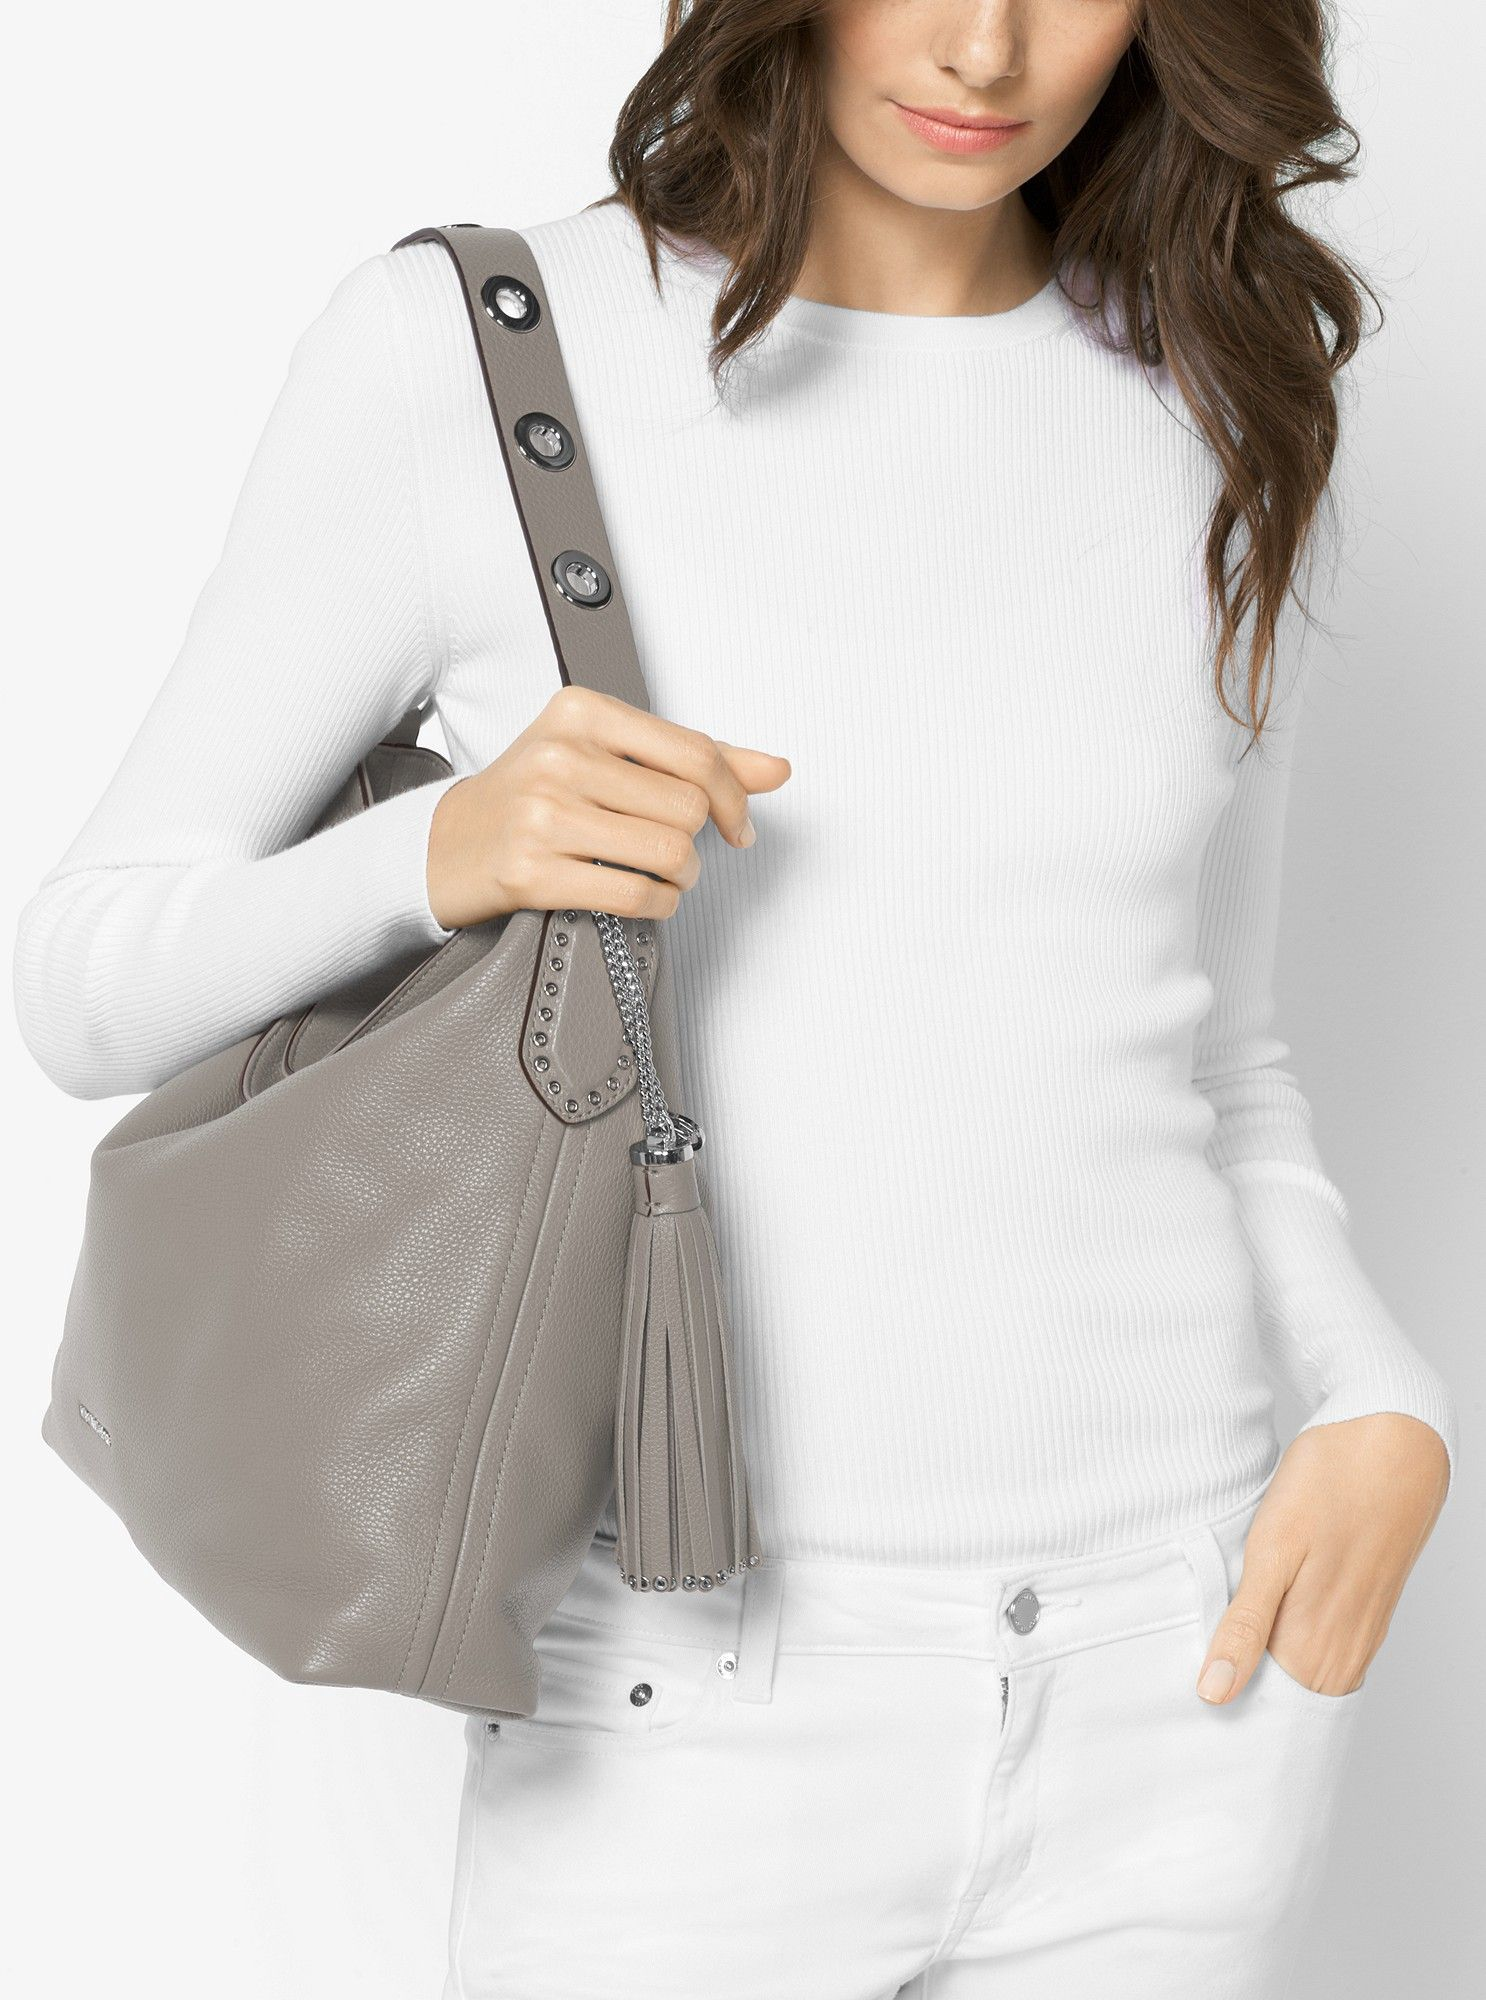 b0584dcdf241 Michael Kors Brooklyn Large Leather Shoulder Bag - Pearl Grey in ...